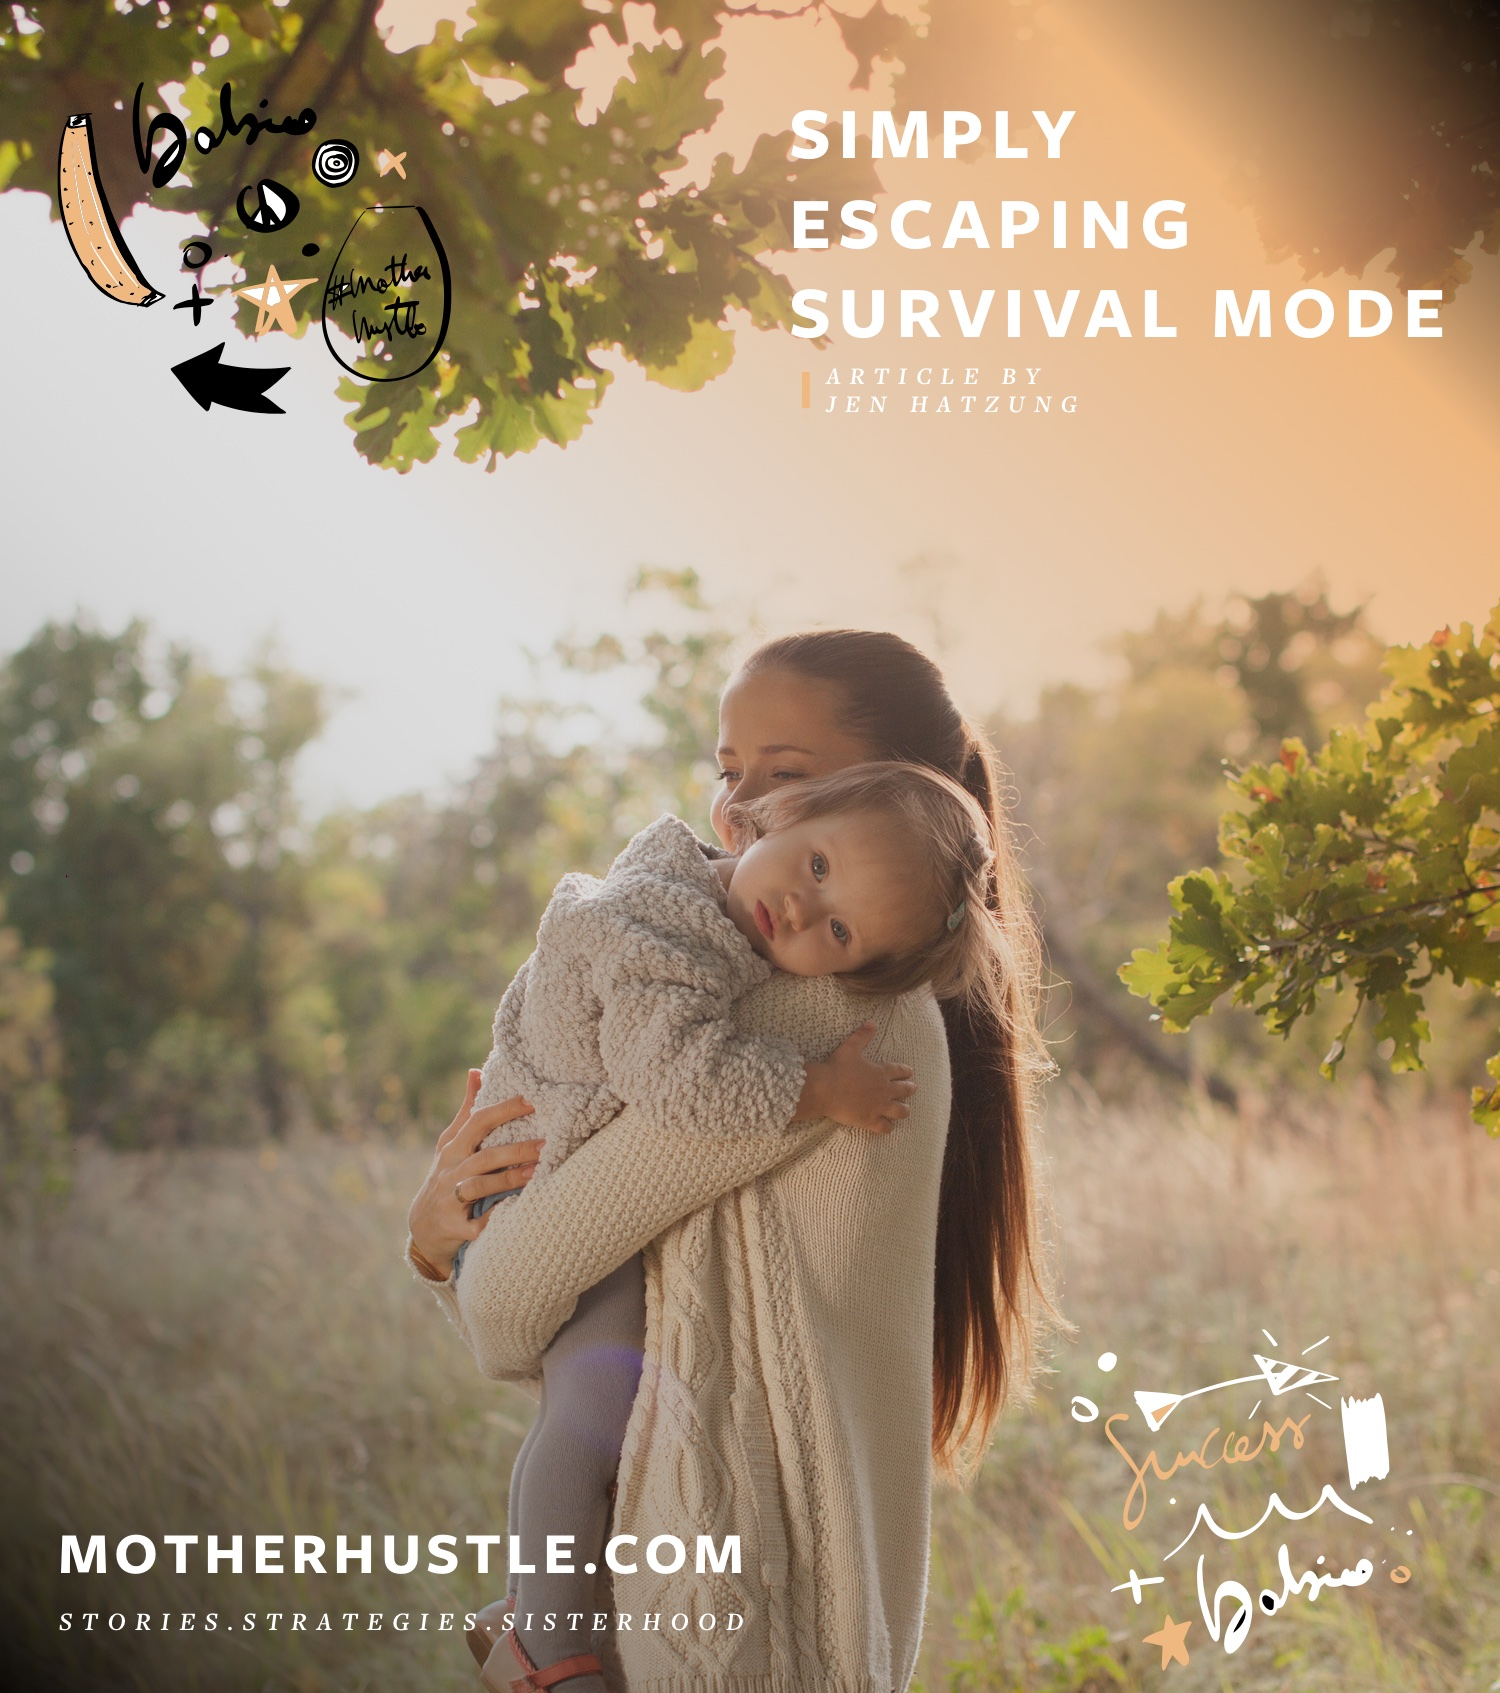 Simply Escaping Survival Mode - Jen Hatzung MotherHustle